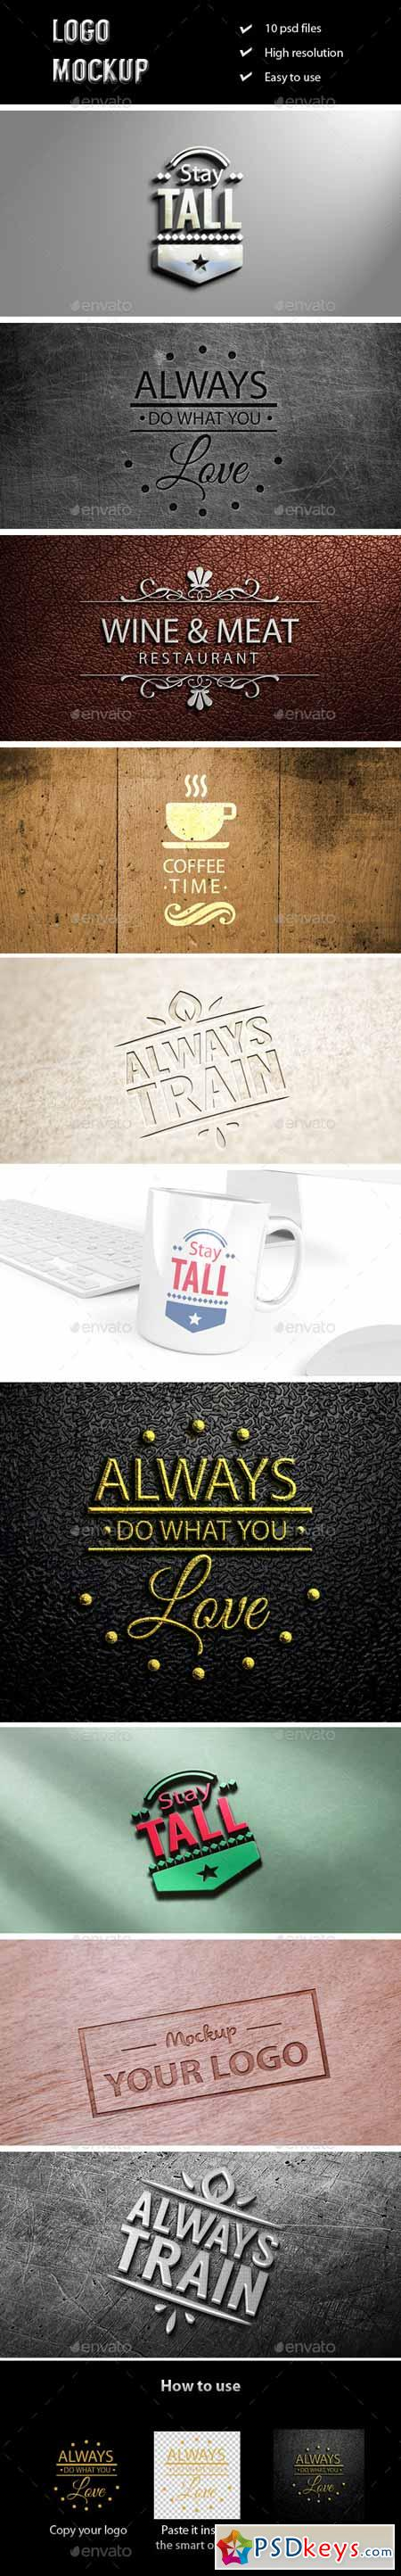 Logo Mockup Collection 2 11690846 » Free Download Photoshop